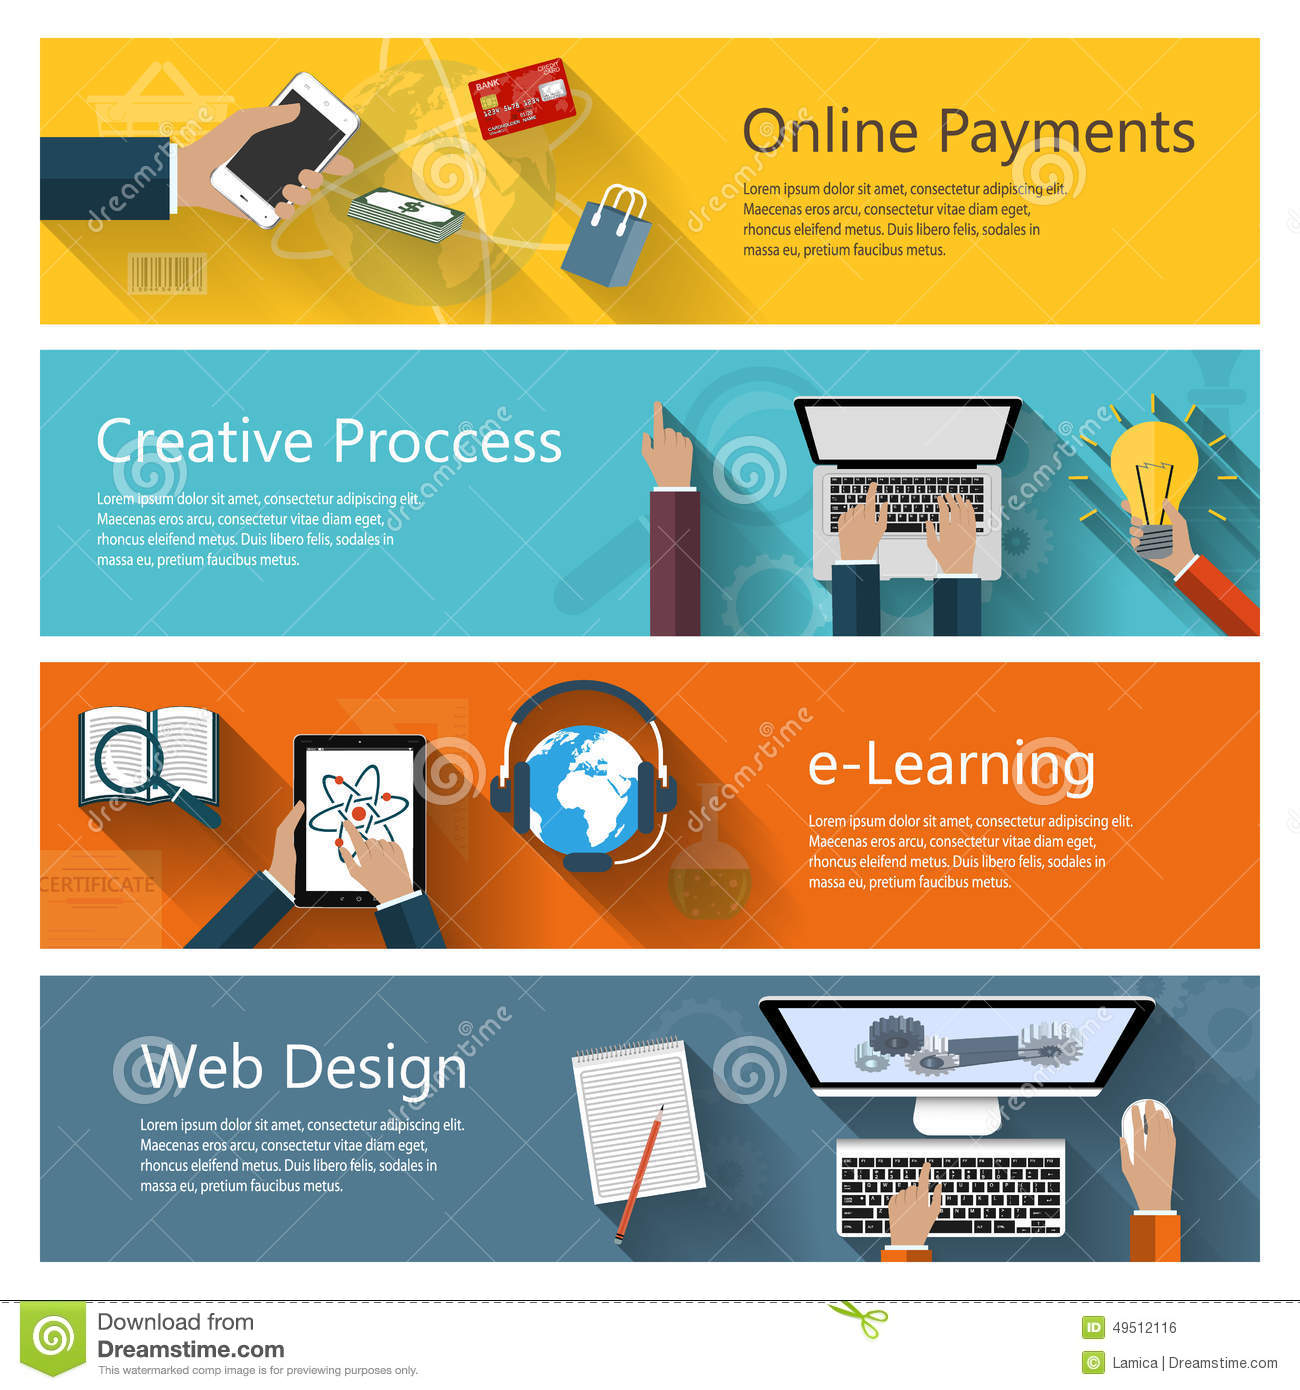 website design learning online